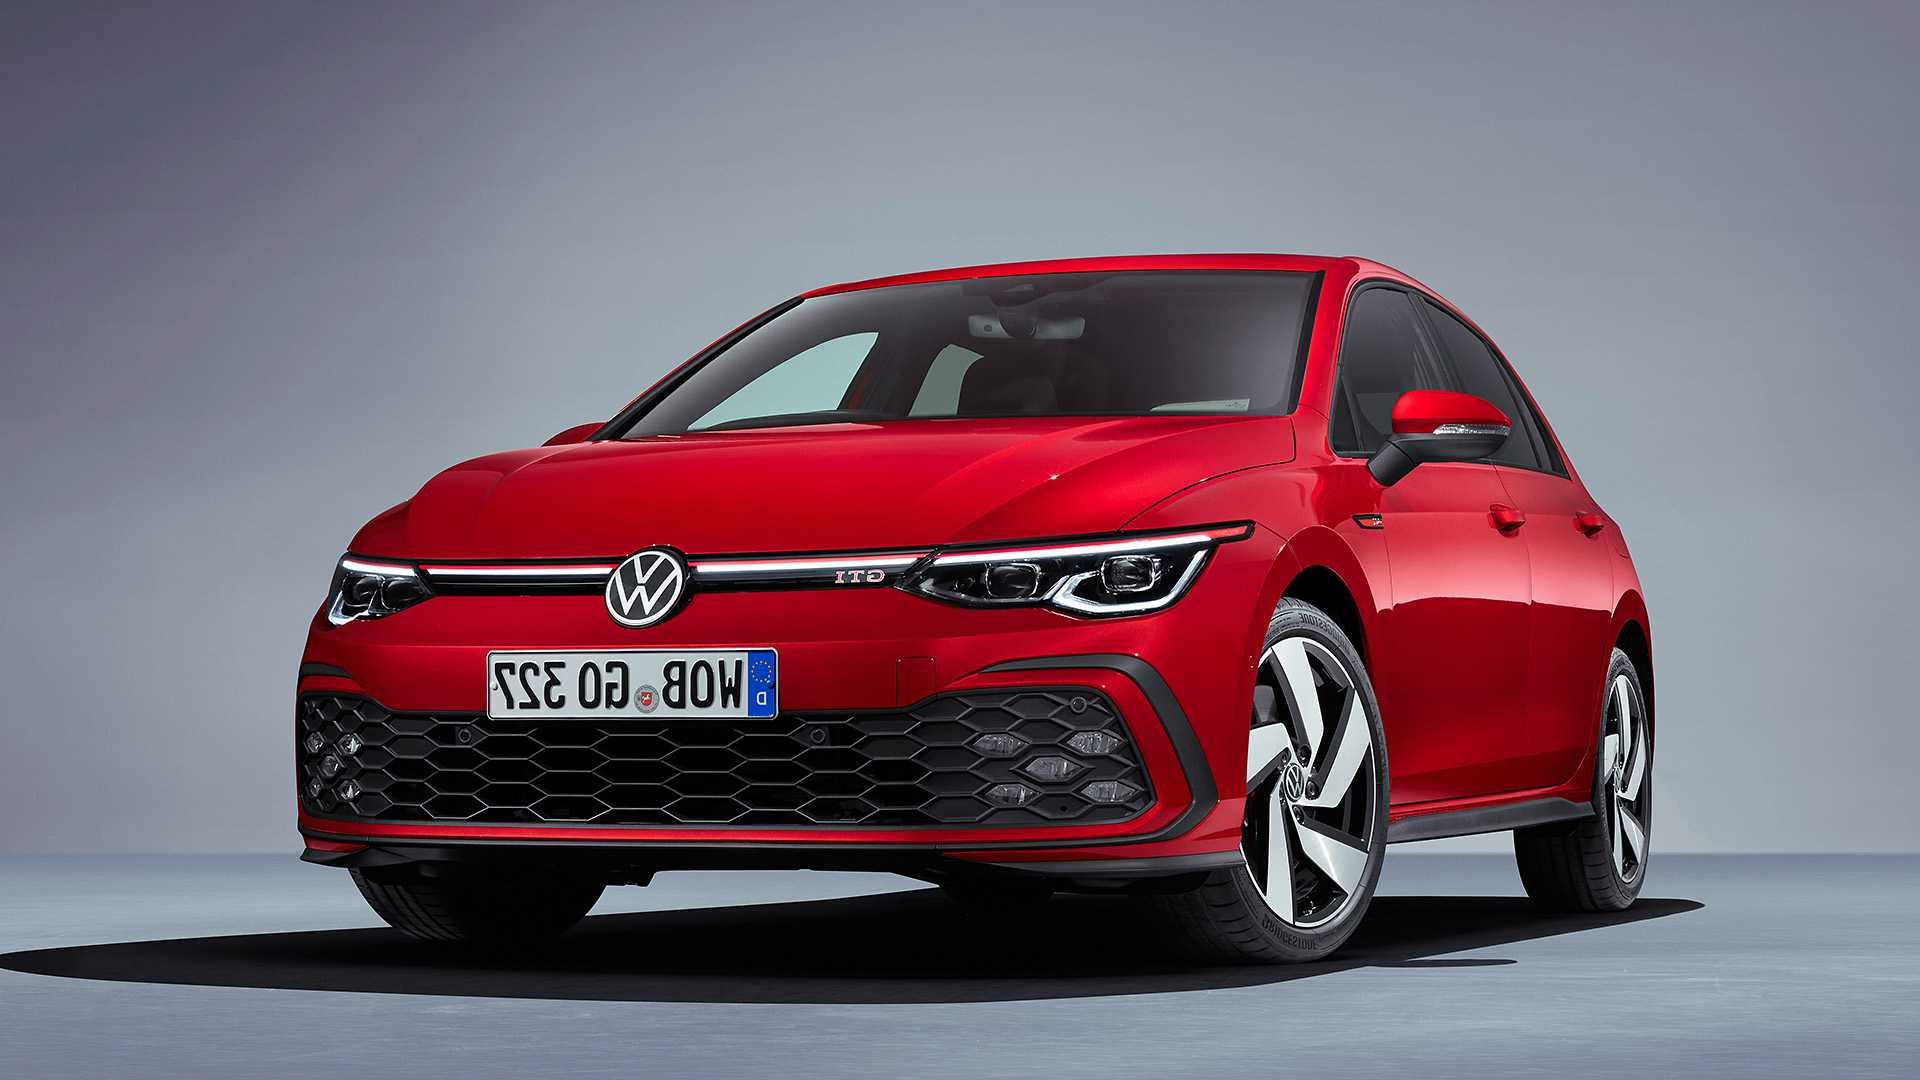 Volkswagen Golf Gti 2021 2.0T In Uae: New Car Prices, Specs